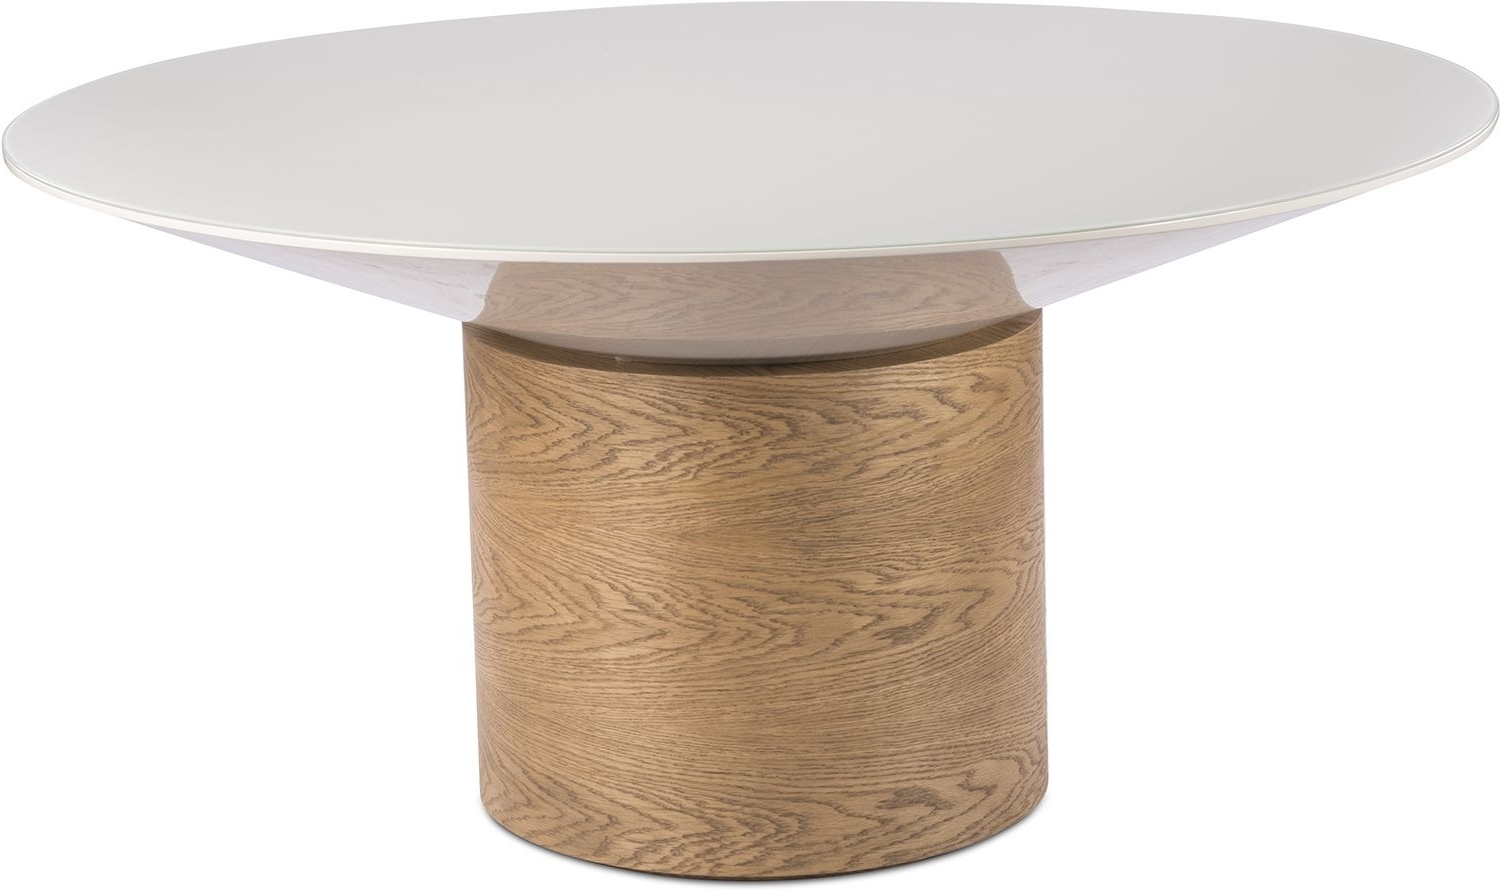 Most Current Tulipa Dining Table Beige Oak Inside Helms Round Dining Tables (View 21 of 25)